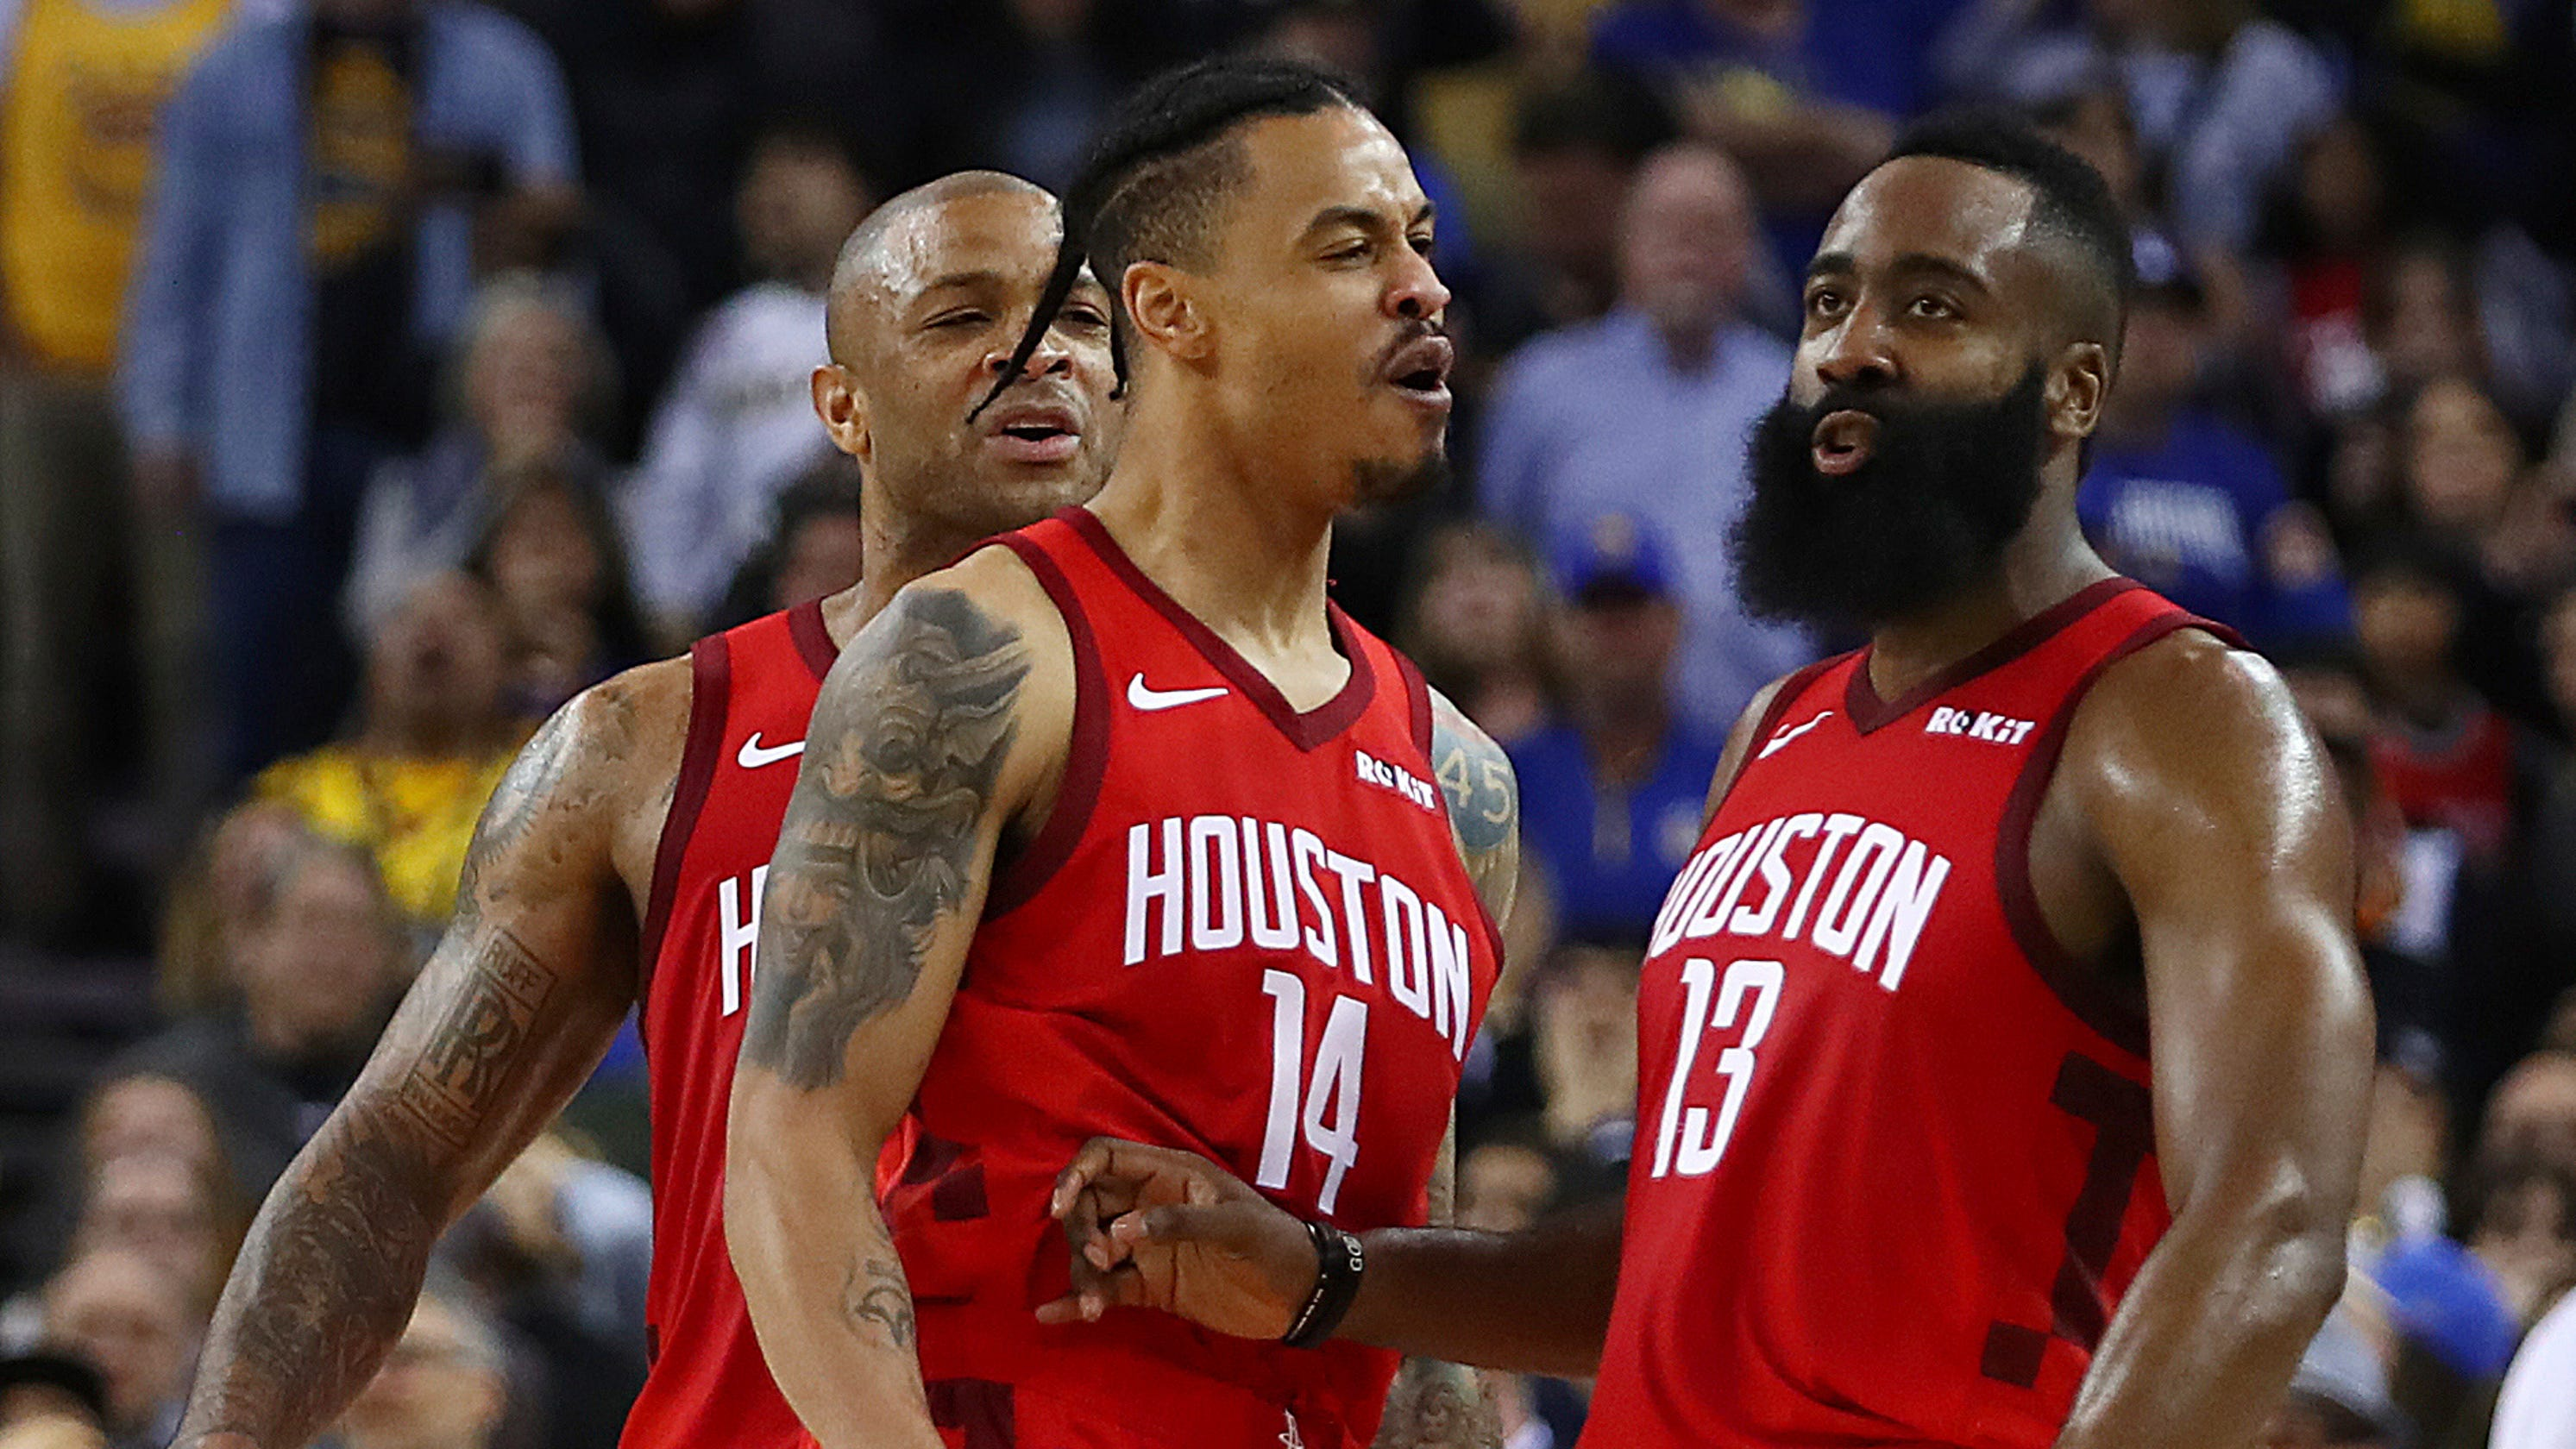 e03ceda42fbb James Harden lifts Rockets over Warriors with late 3-pointer in OT